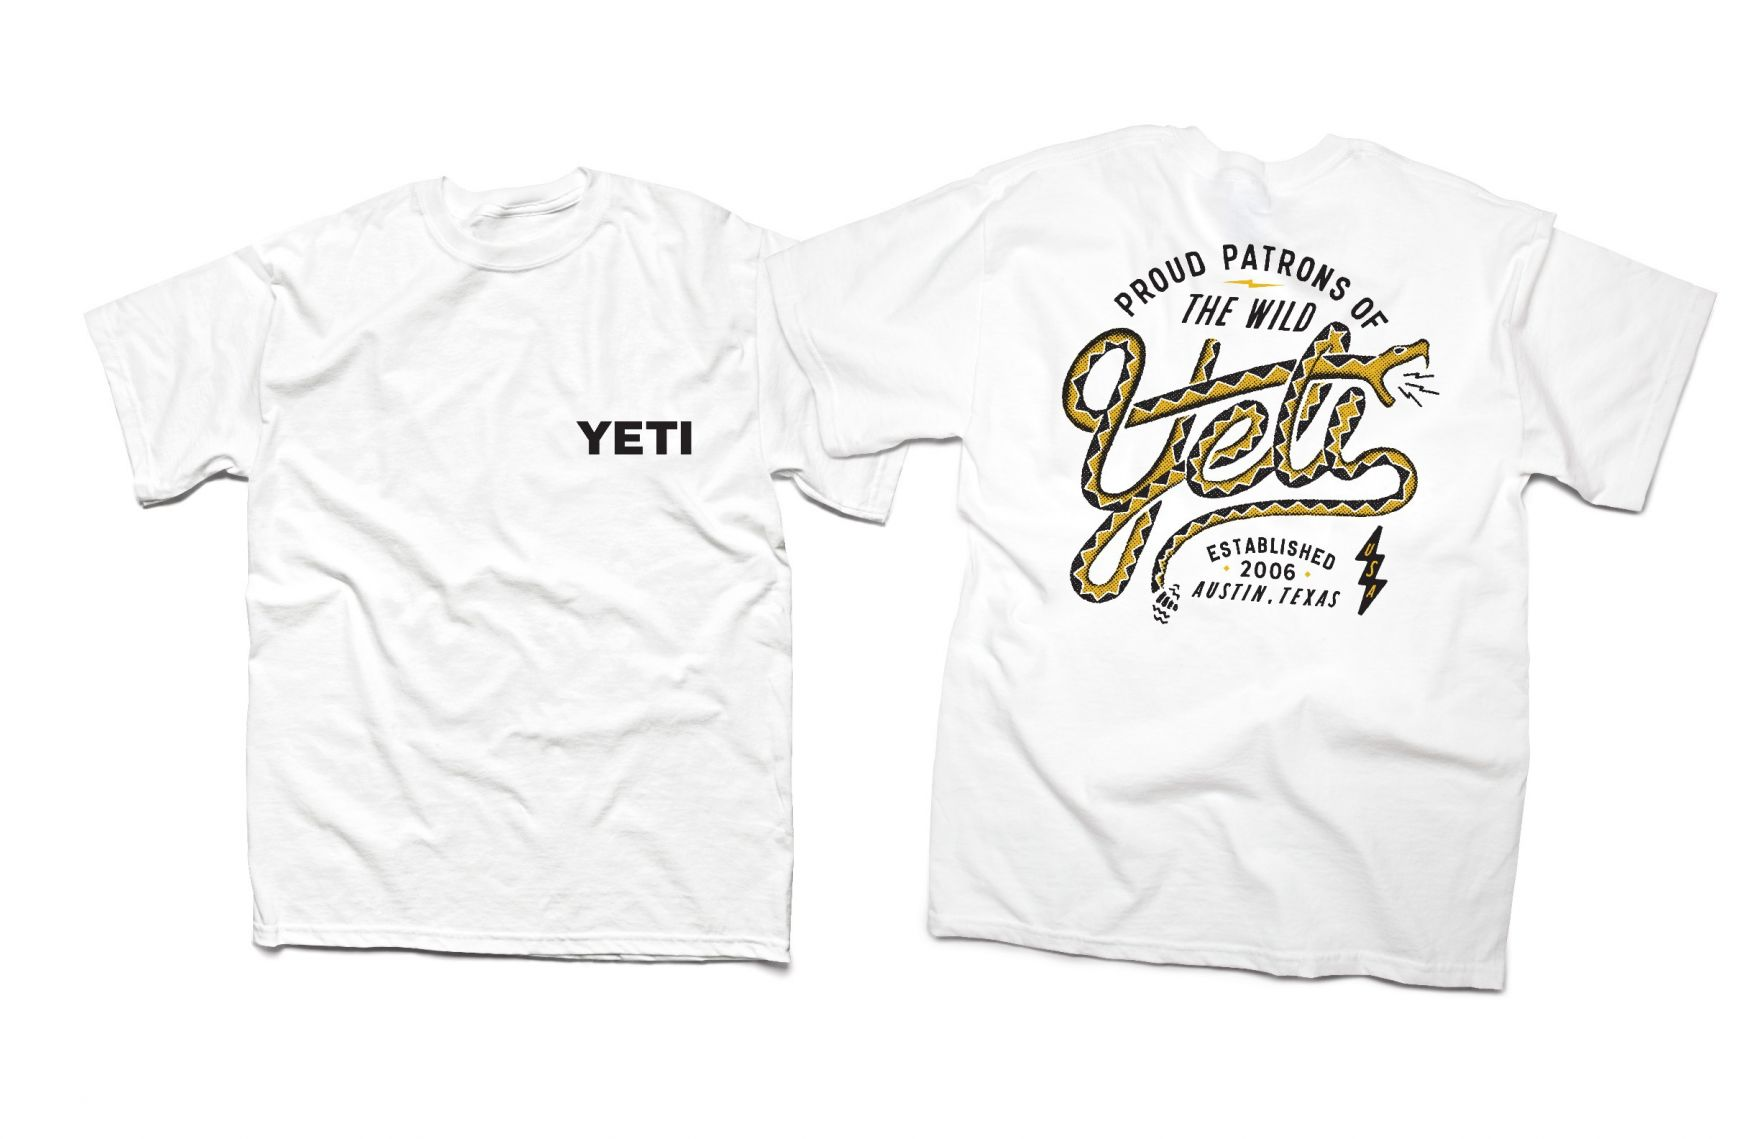 YETI-Screaming-Snake-Shirt-01-11